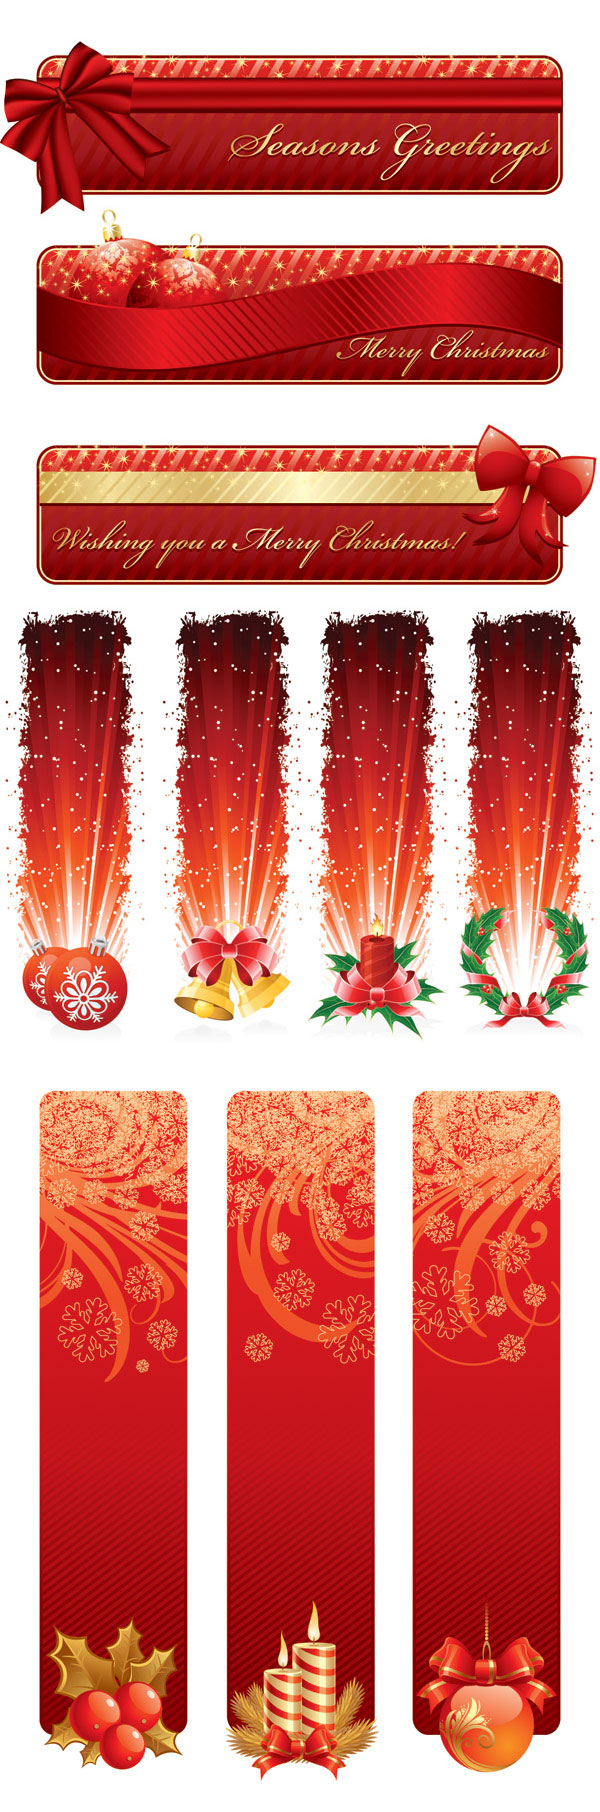 Red Style Holiday Banner Vector Graphics Free Download